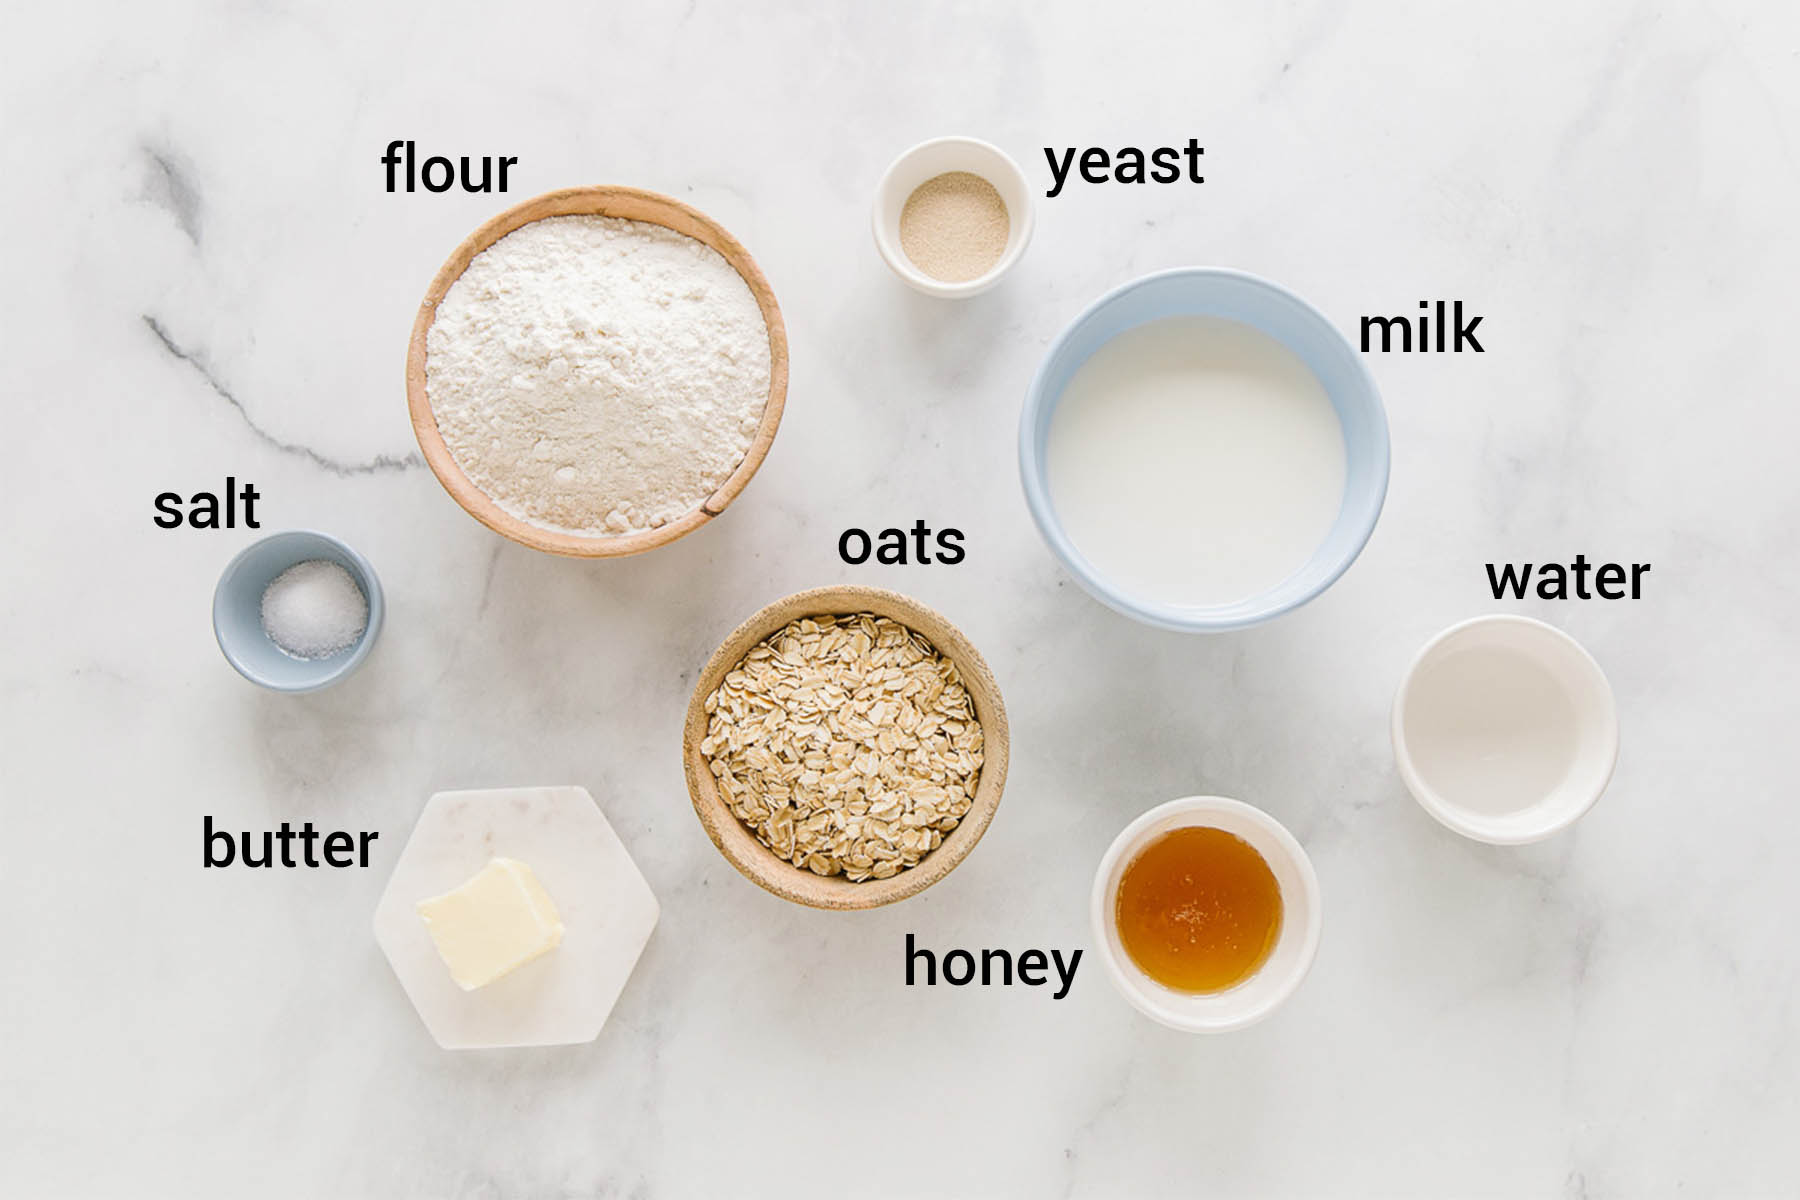 Bowls of various sizes with these ingredients in them: flour, yeast, milk, water, honey, oats, butter, salt.